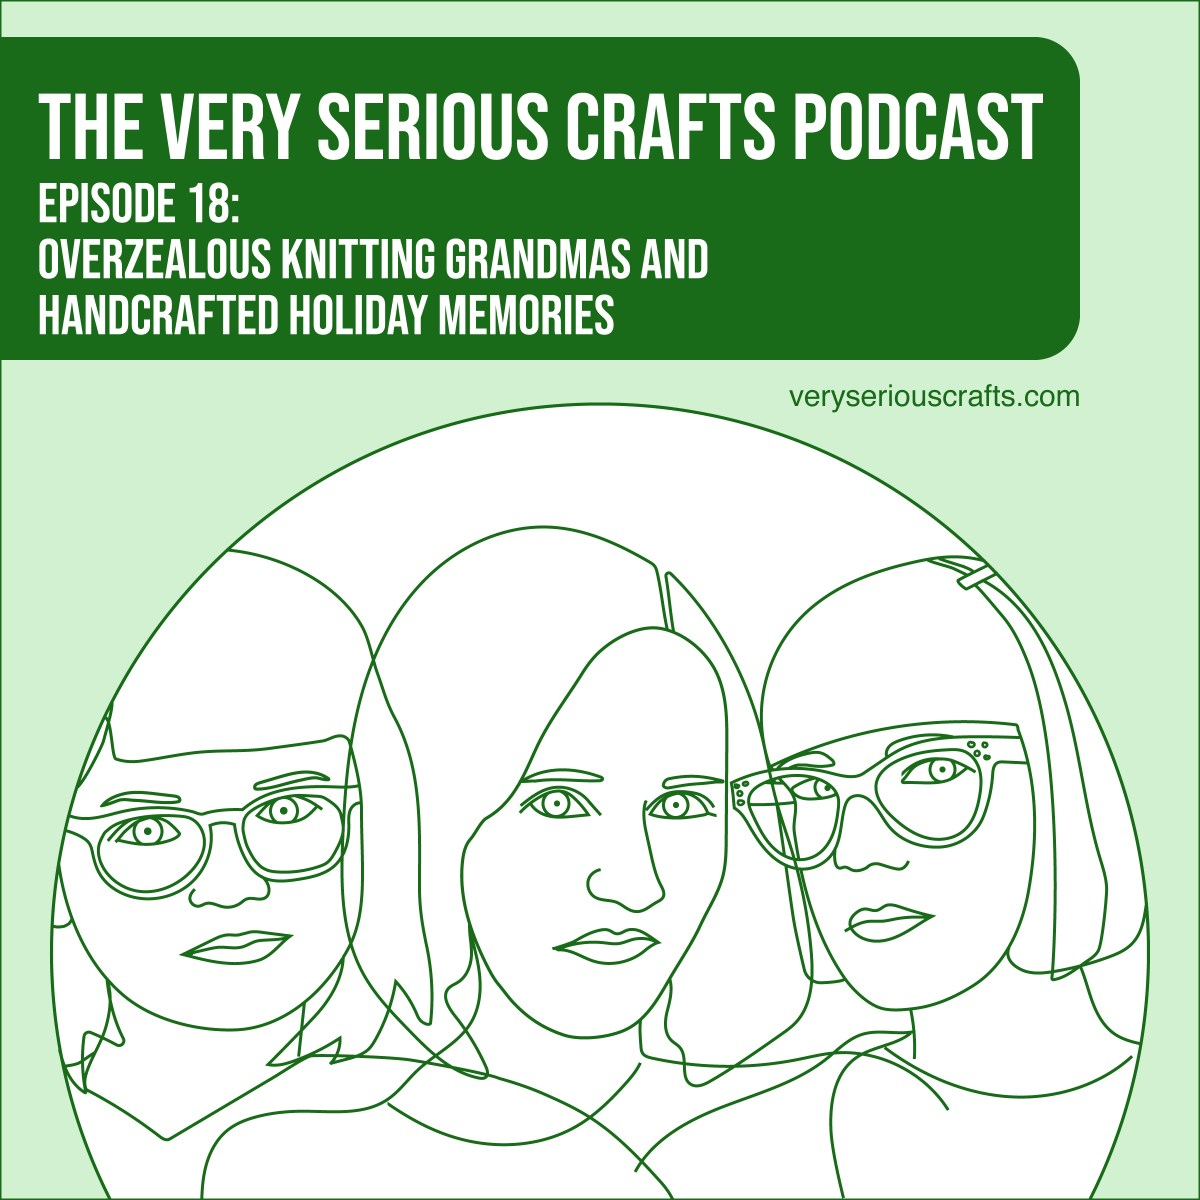 The Very Serious Crafts Podcast, Season 1: Episode 18 – Overzealous Knitting Grandmas and Handcrafted Holiday Memories